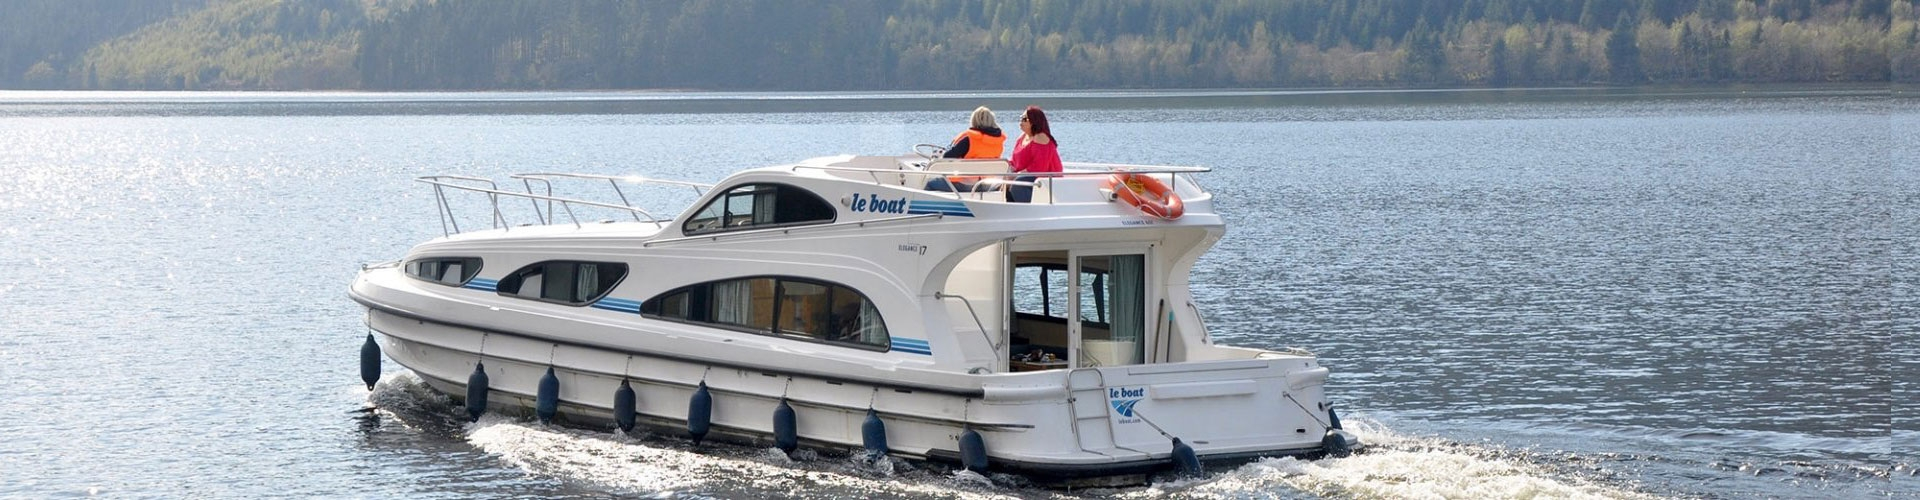 Le Boat - Comfort and Comfort Plus Boats